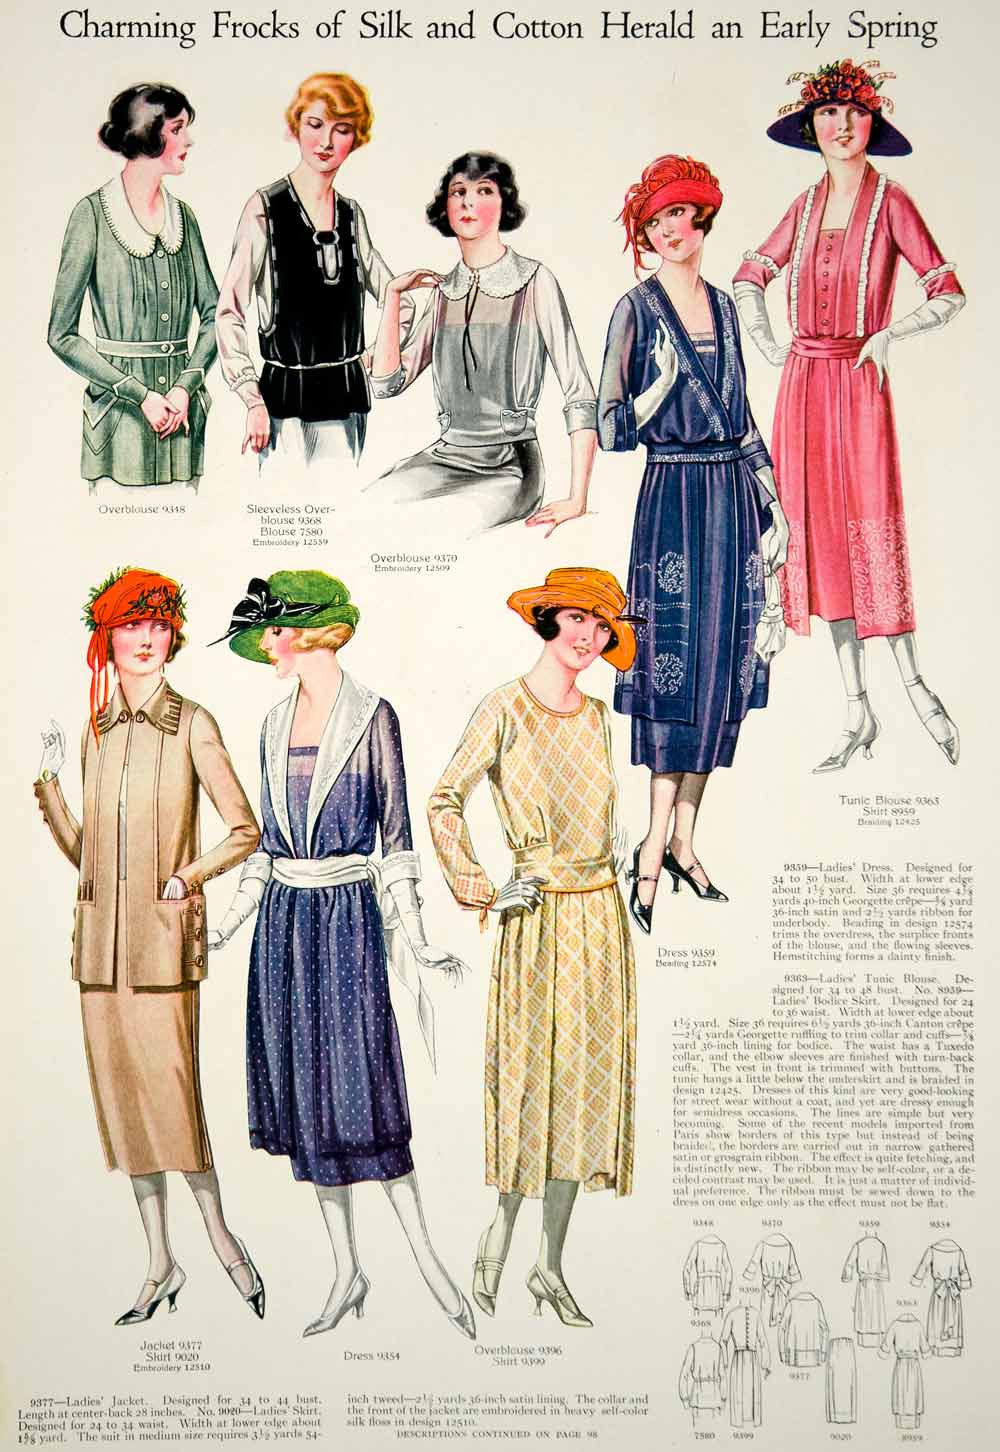 1921 Print Flapper Era Fashion Illustrations Women Spring Dresses Turban Hats - Period Paper  - 3